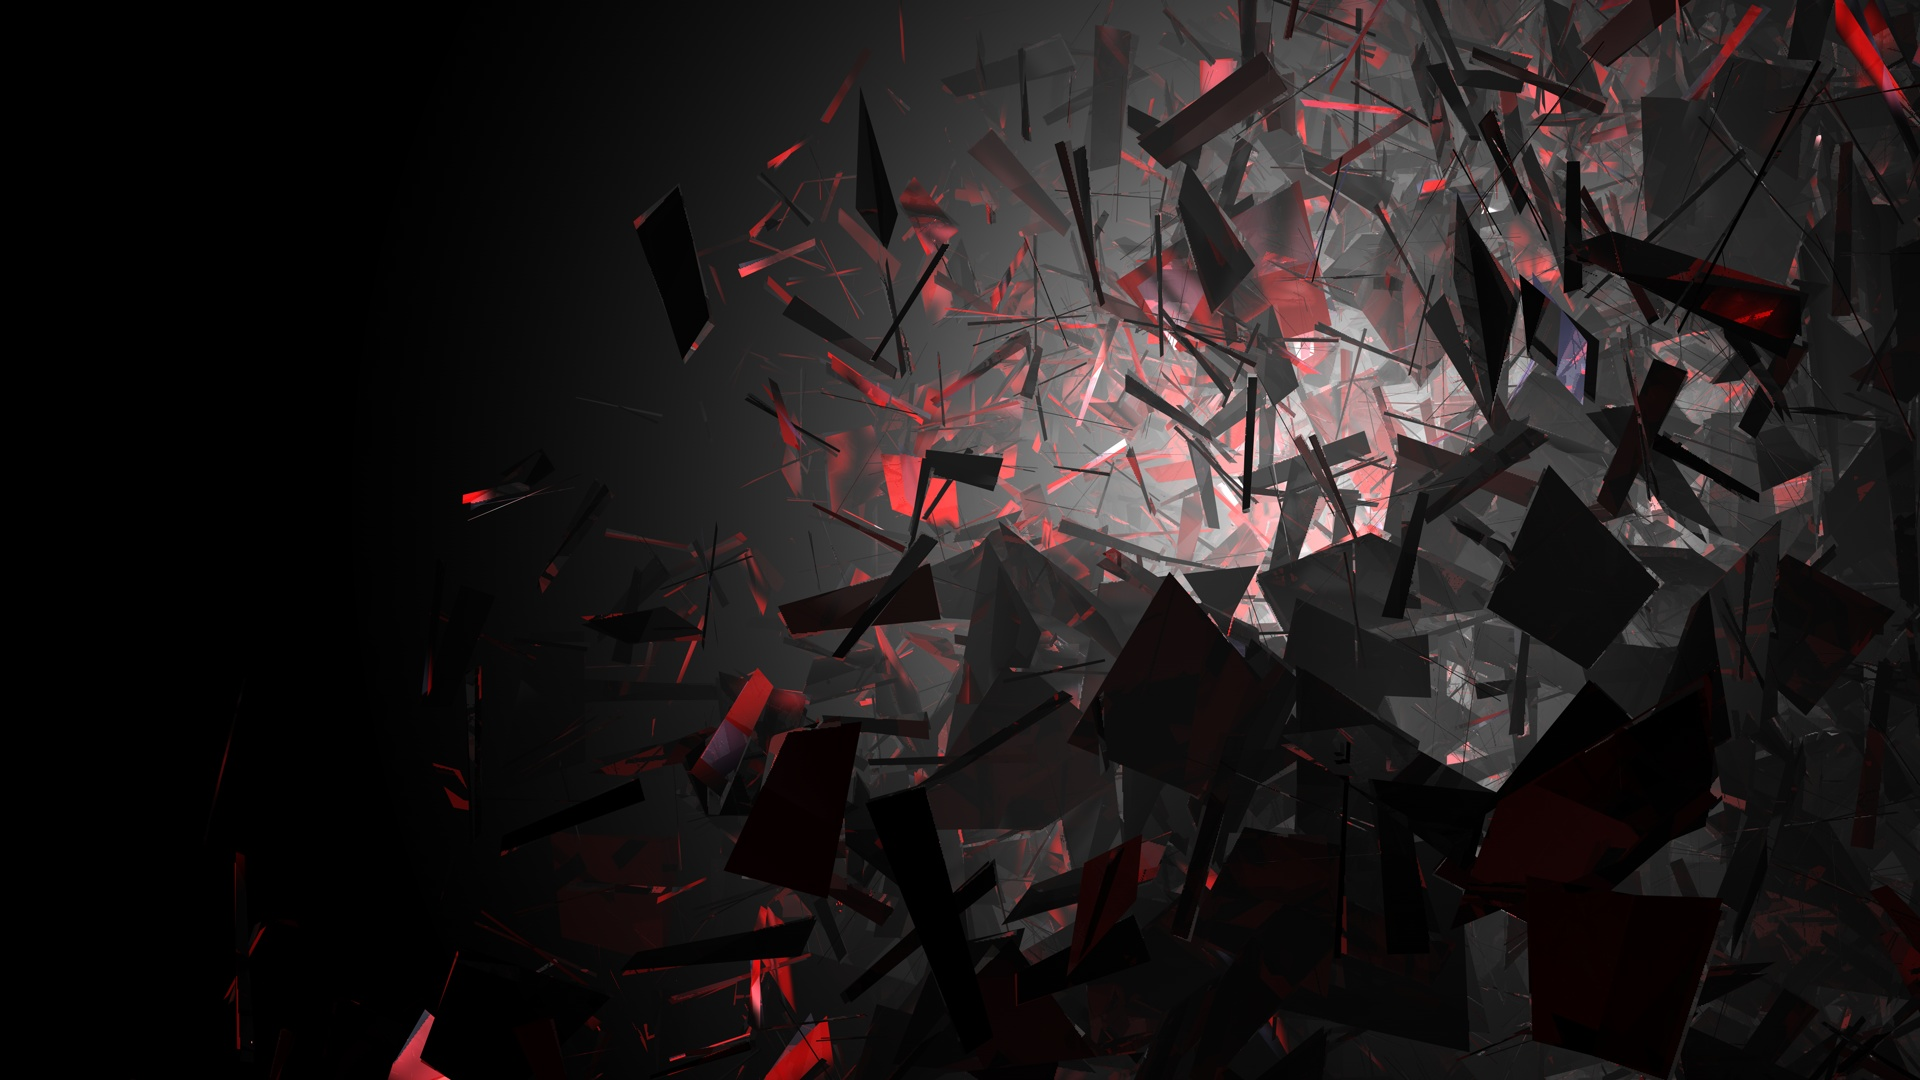 Abstract Dark Wallpaper 1920x1080 Abstract Dark 1920x1080